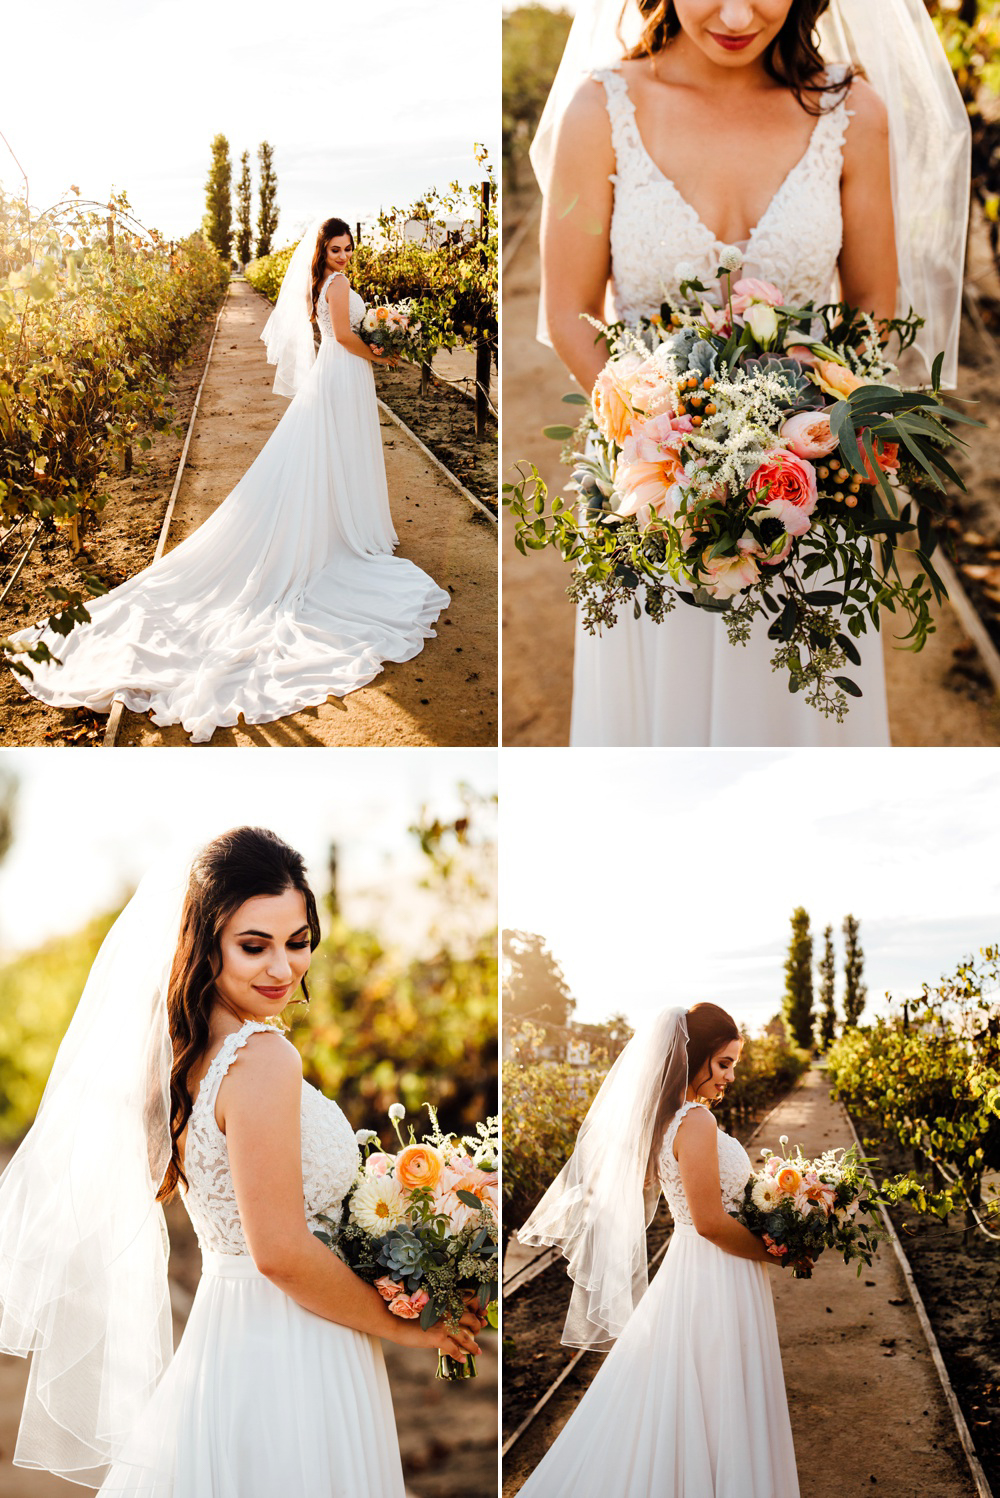 Promenade Turnip Rose Costa Mesa Wedding Photographer